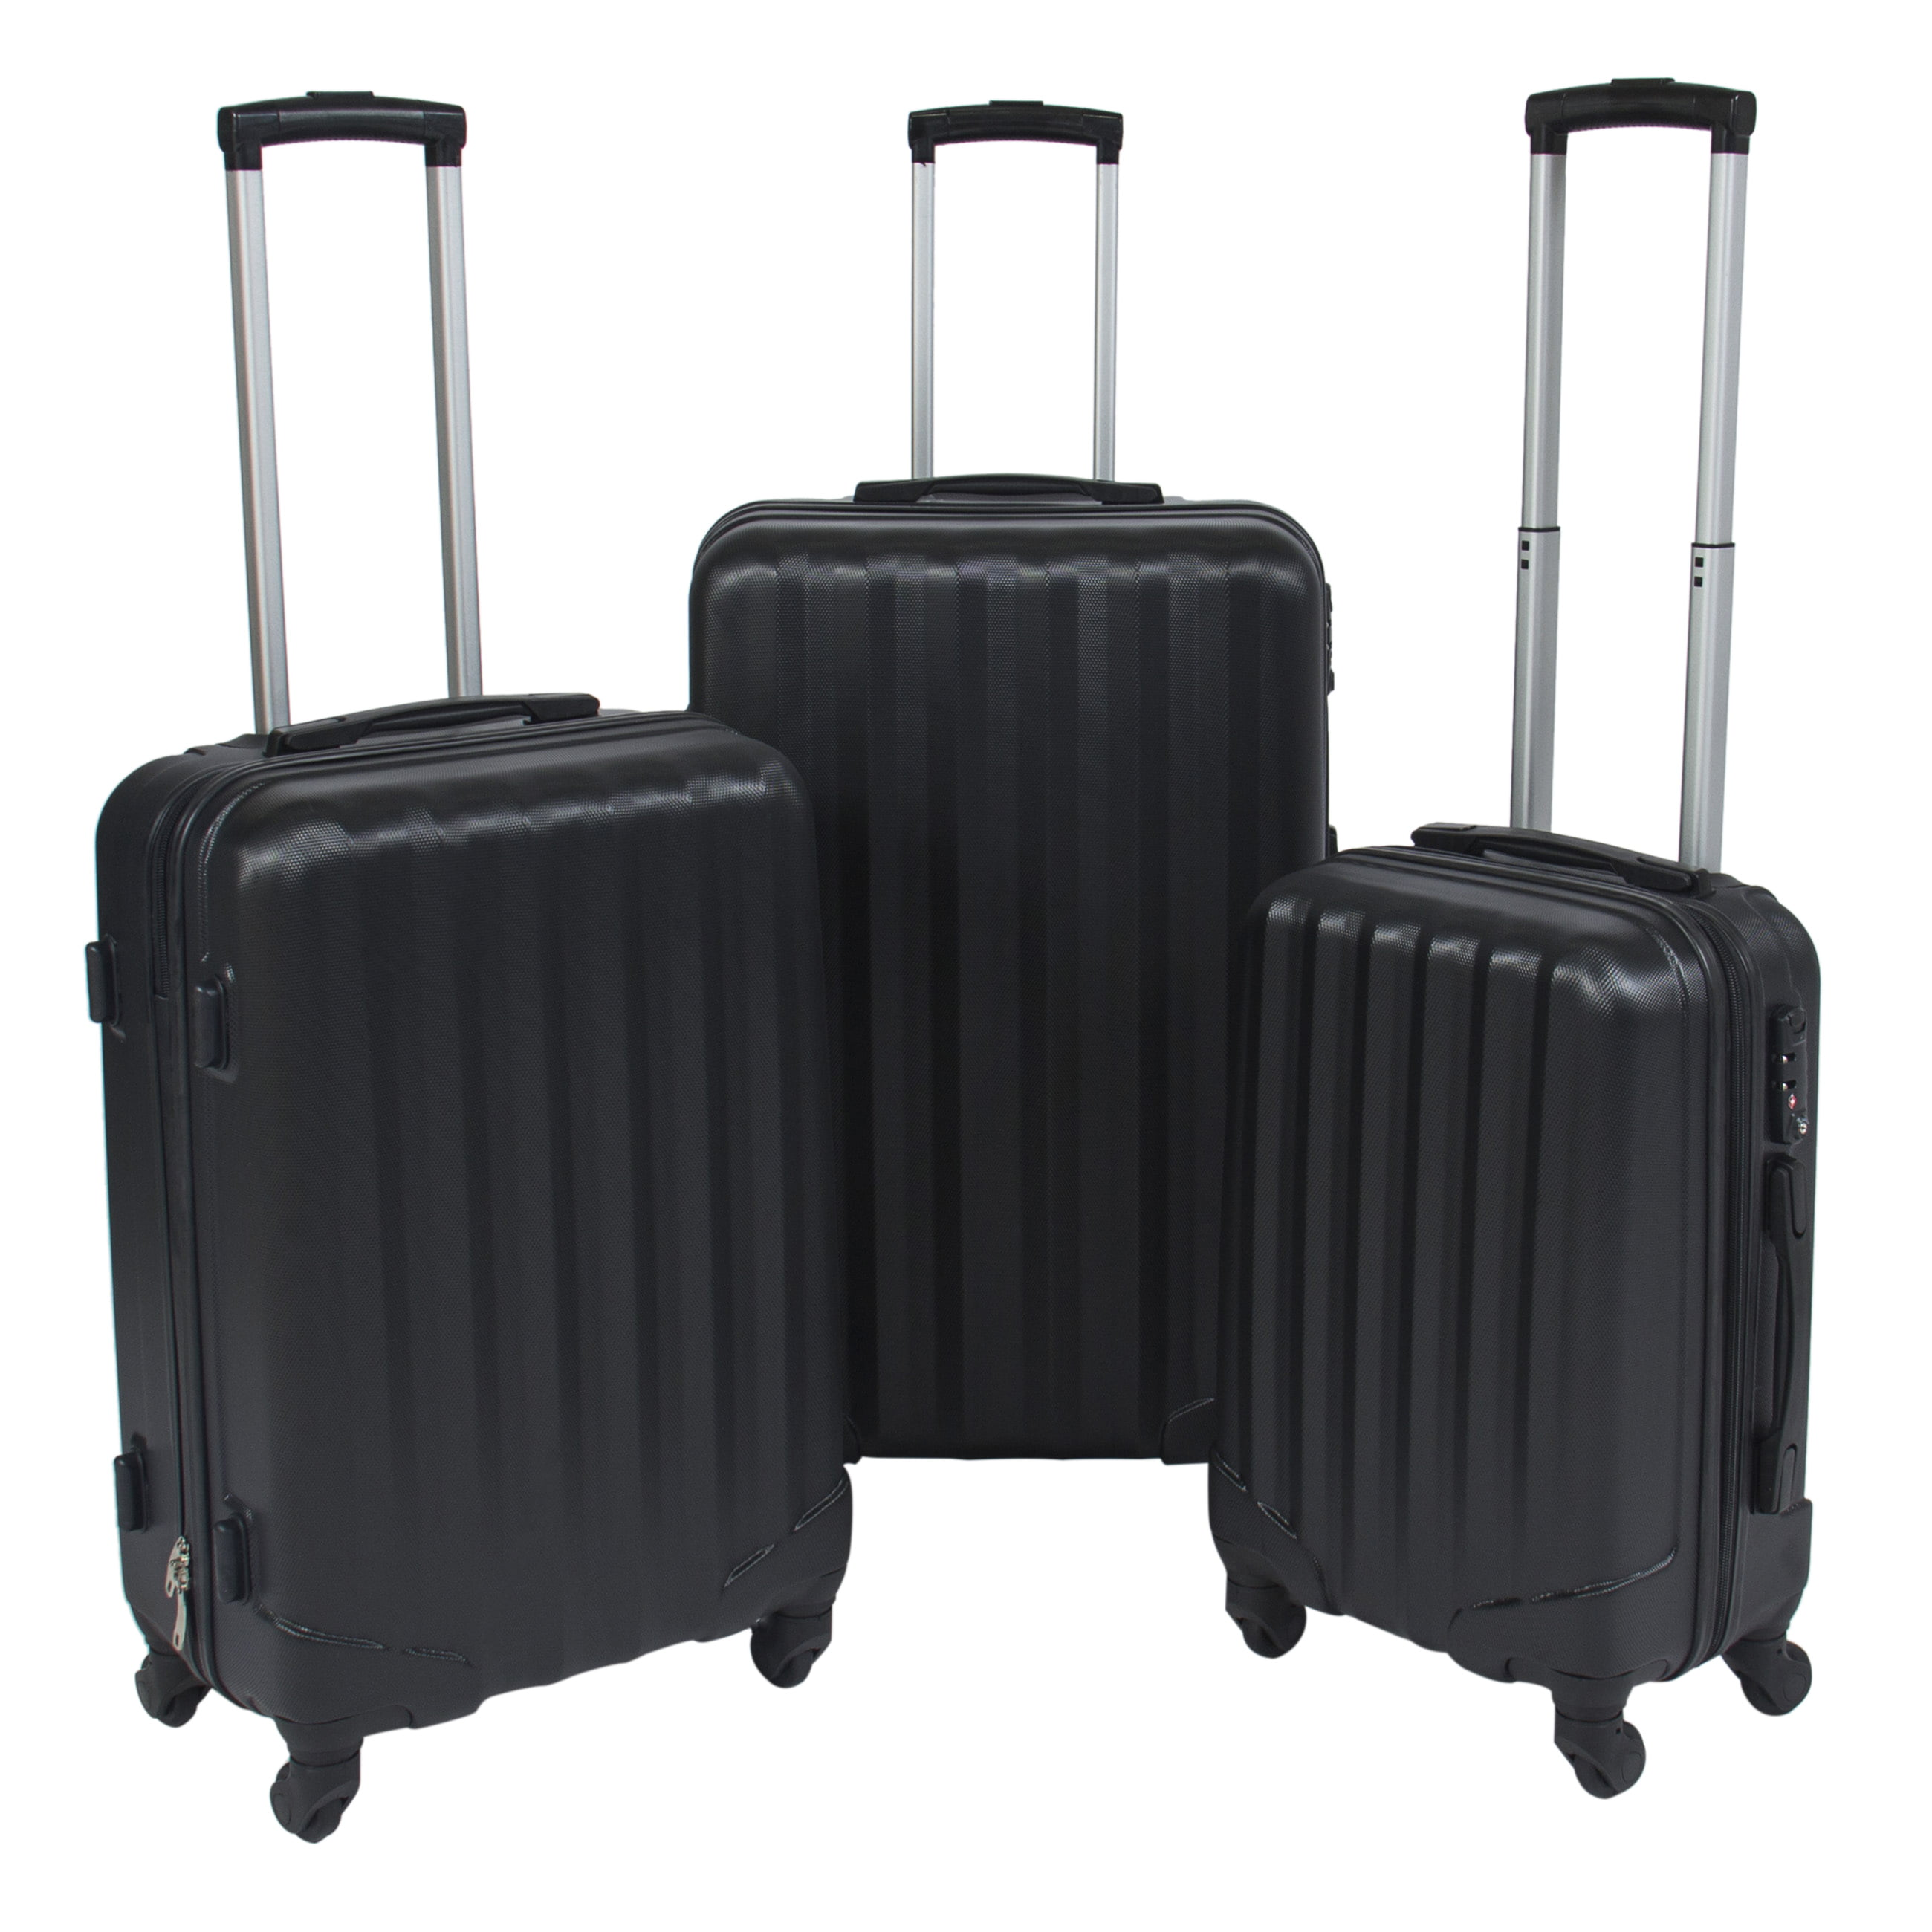 New 3Pc Luggage Set Lightest Spinner Travel Suitcase HardShell Trolley Briefcase